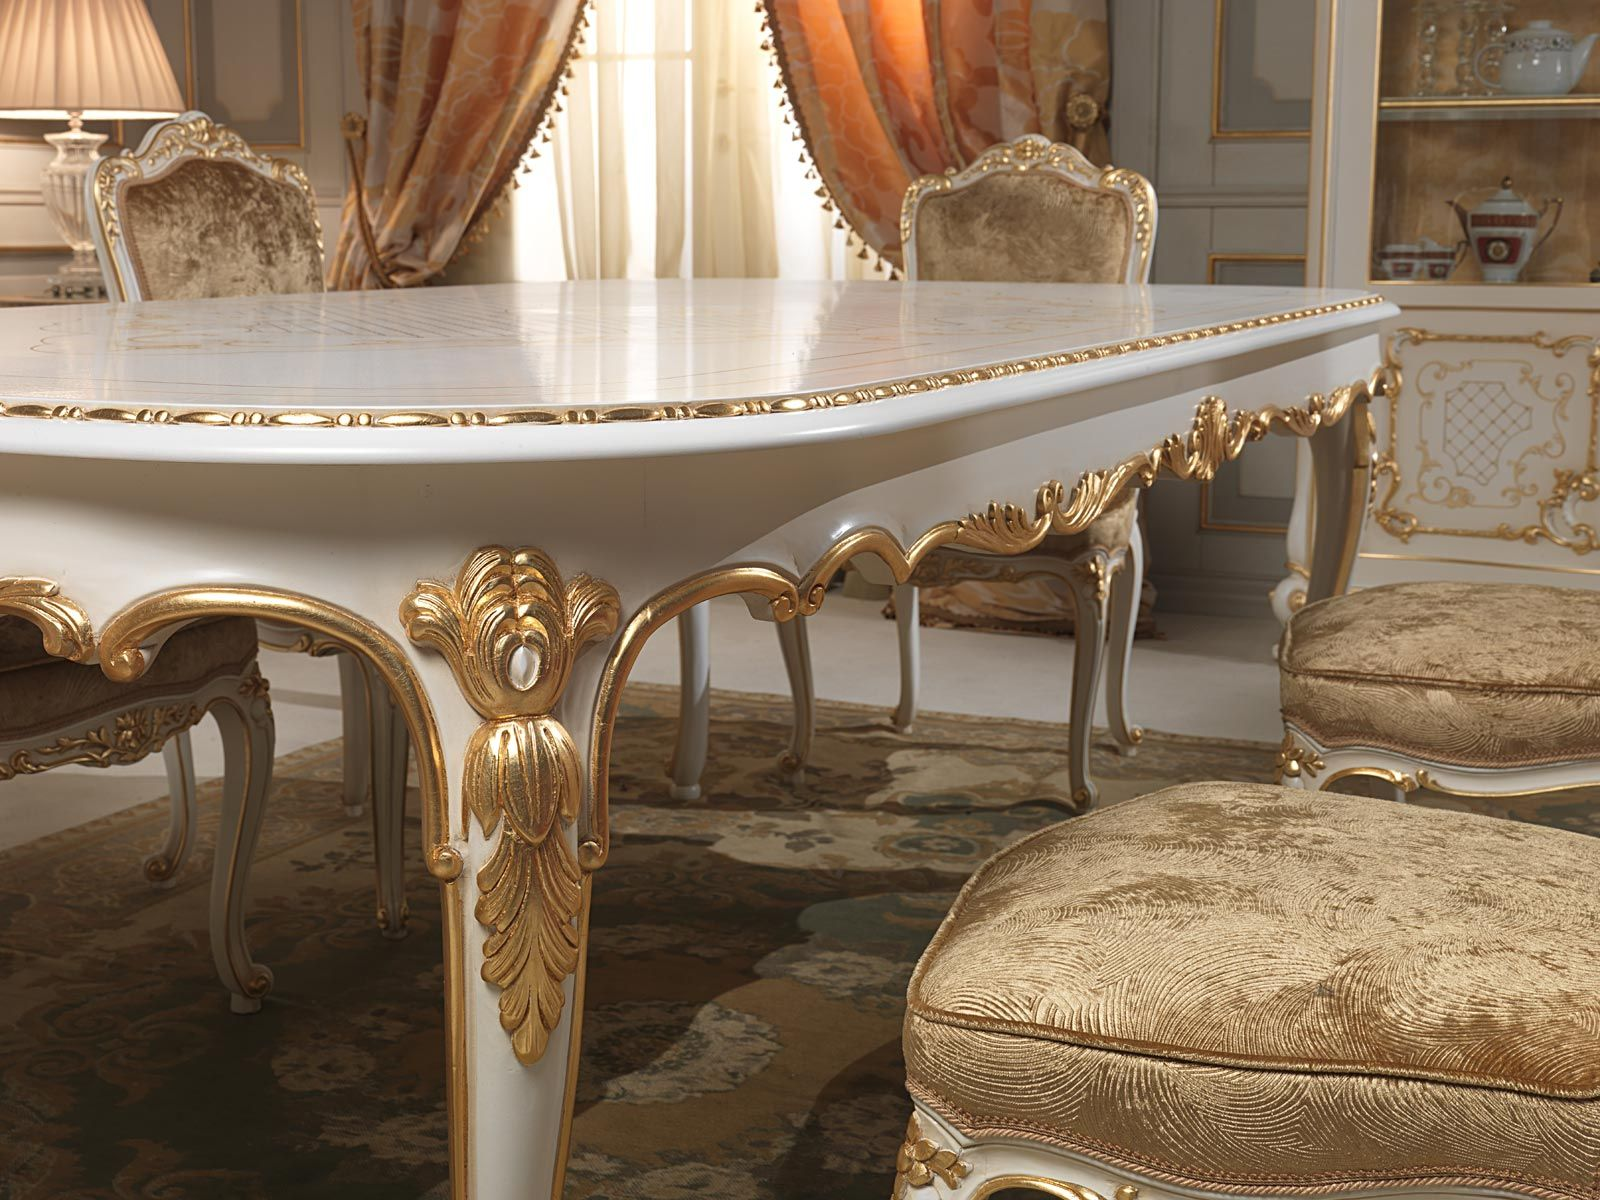 Dining Table In Louis Xv Style With Golden Carvings Executed Simple Luxury Dining Room Furniture Design Decoration